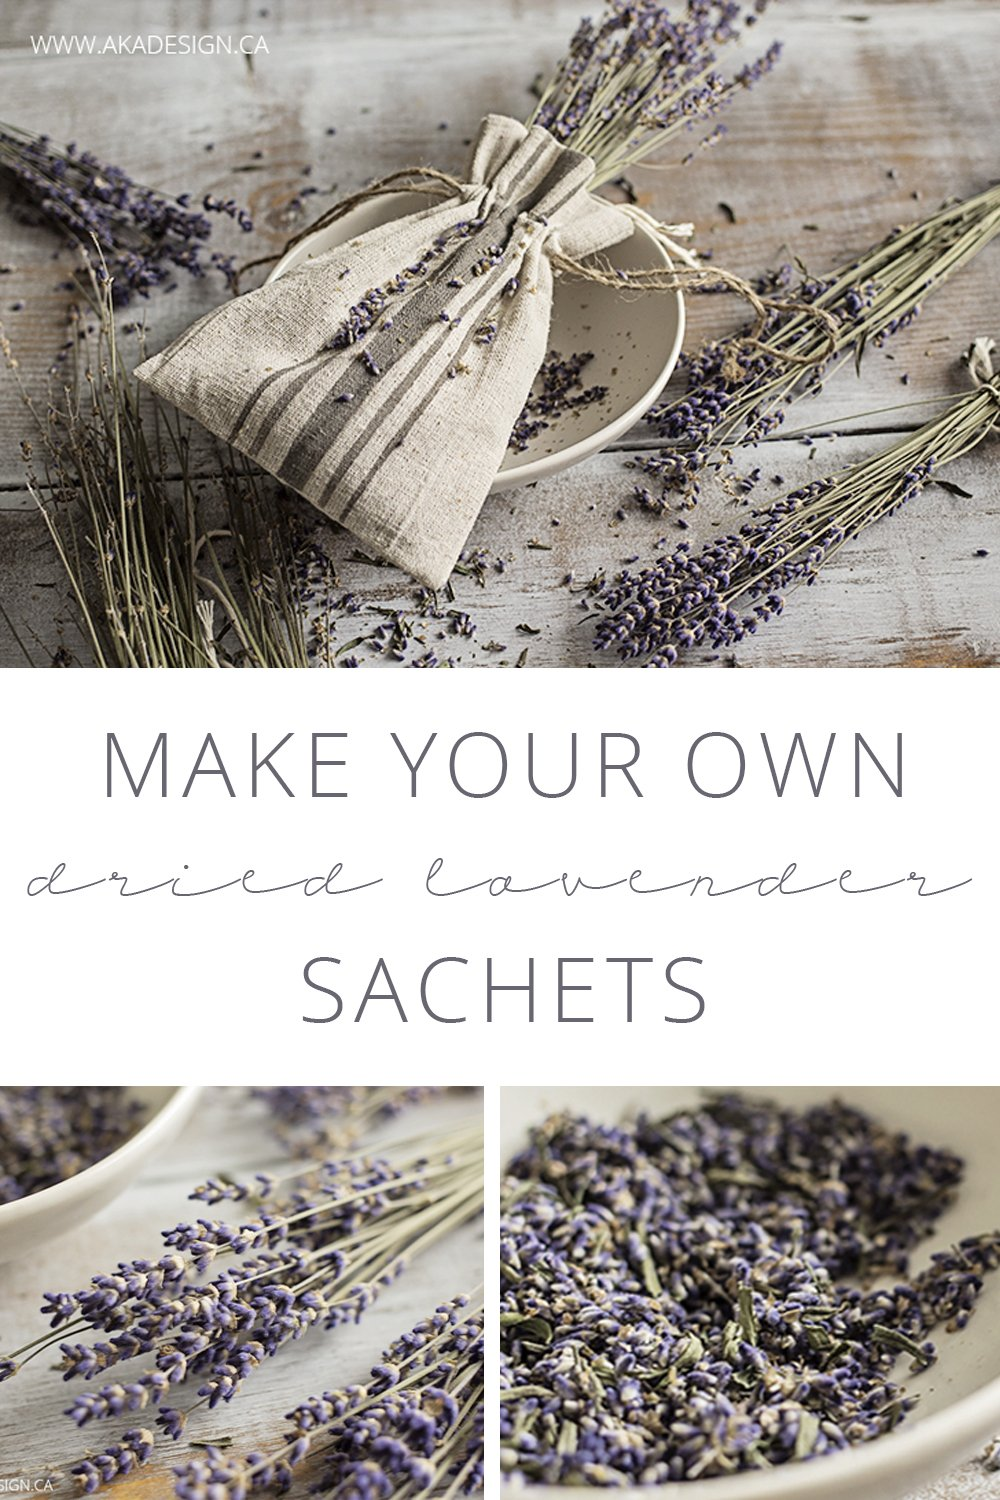 Make your own dried lavender sachets